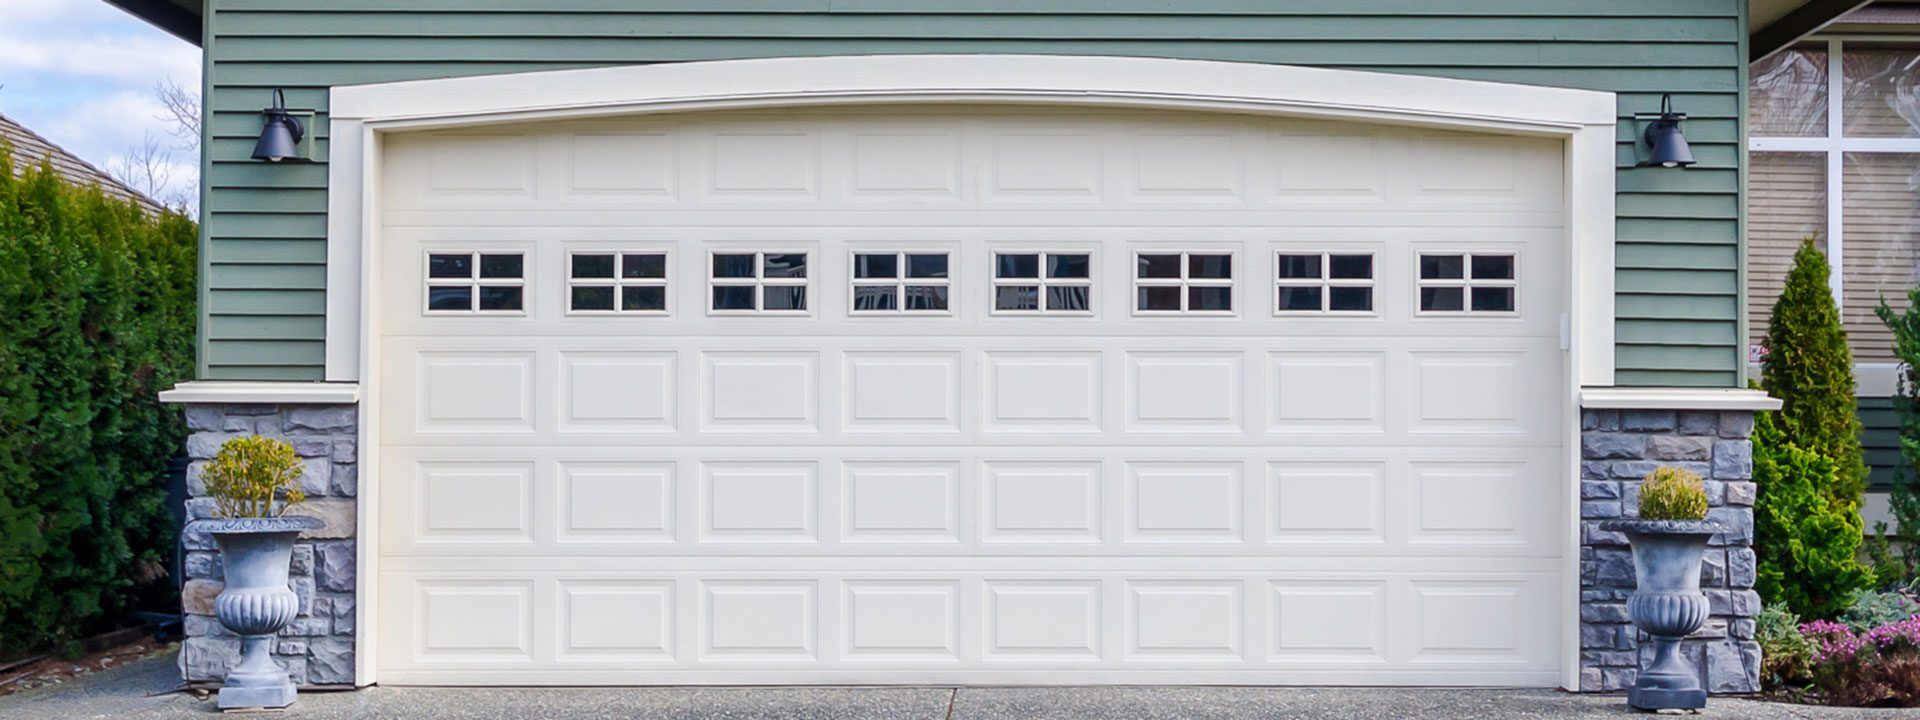 Canton Ga Garage Door Repairs Woodstock Garage Springs Installation